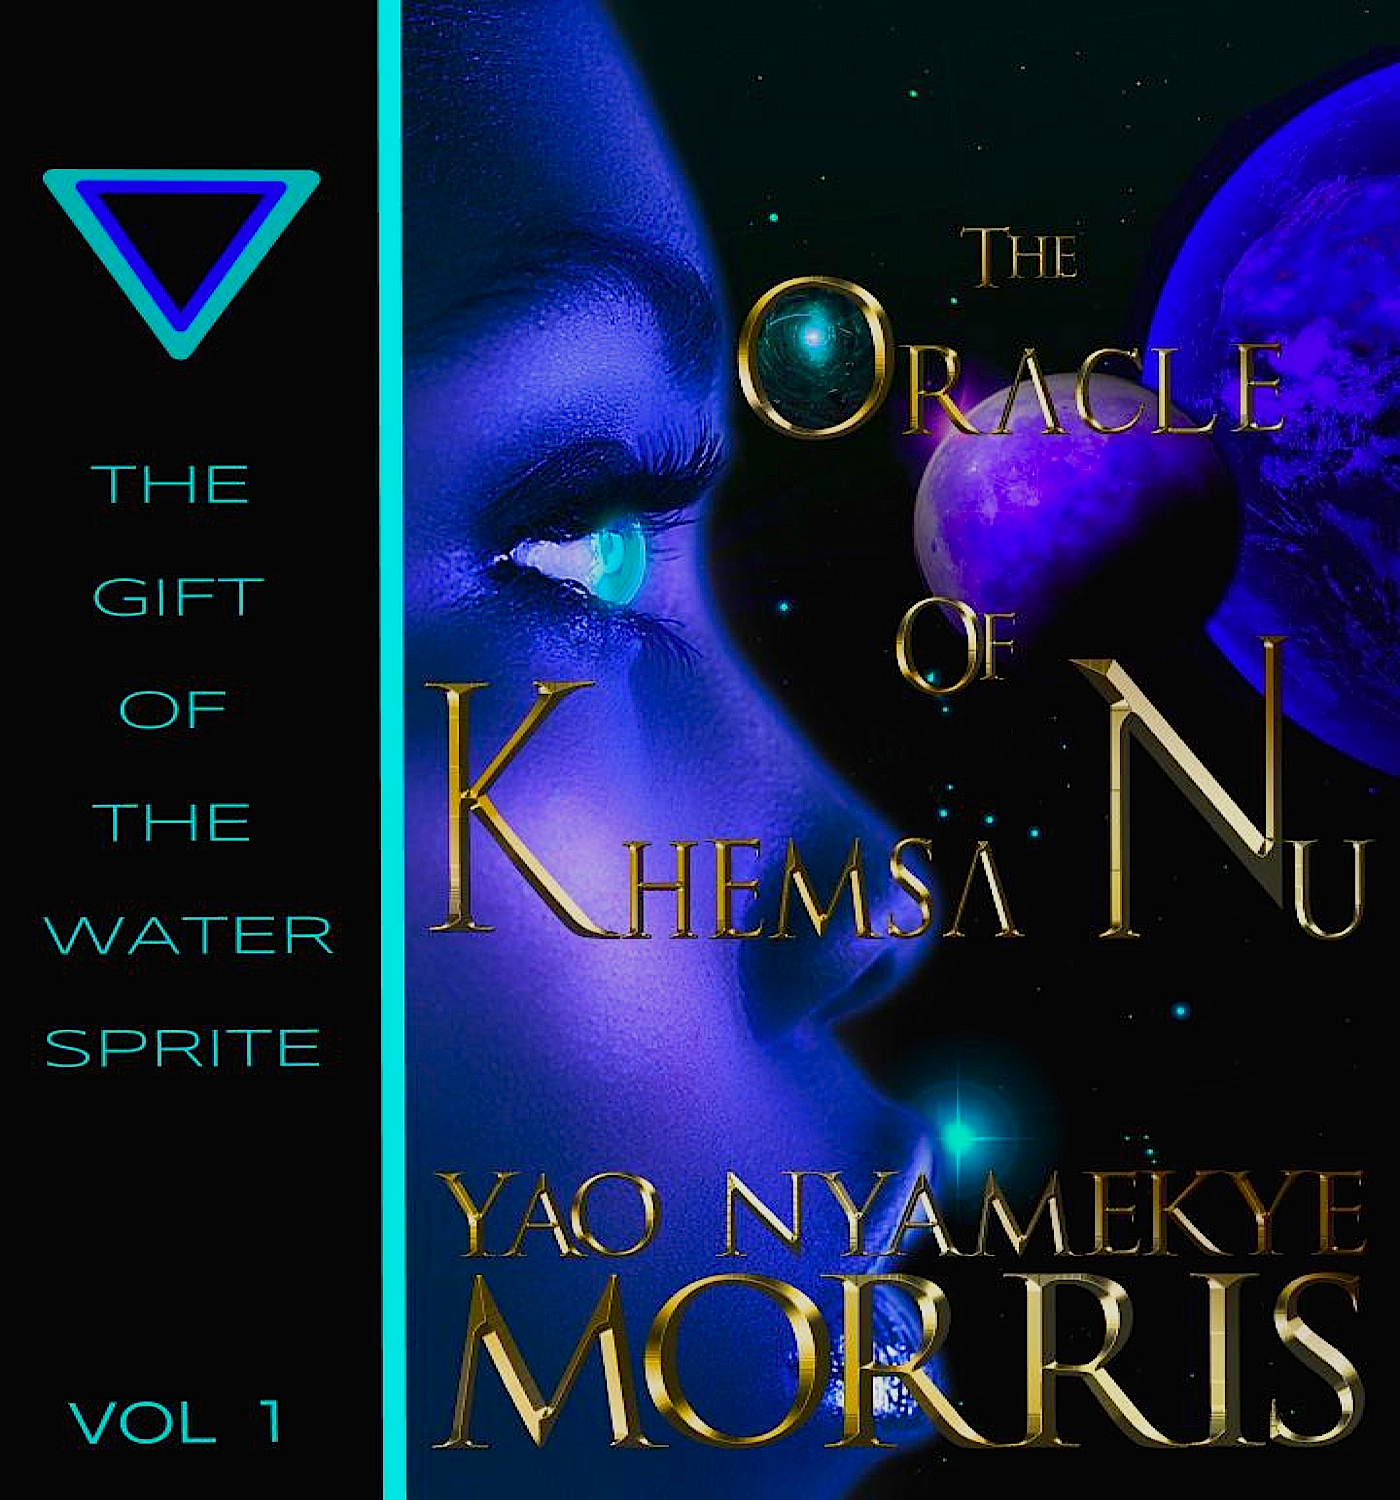 The Oracle of Khemsa Nu Volume 1